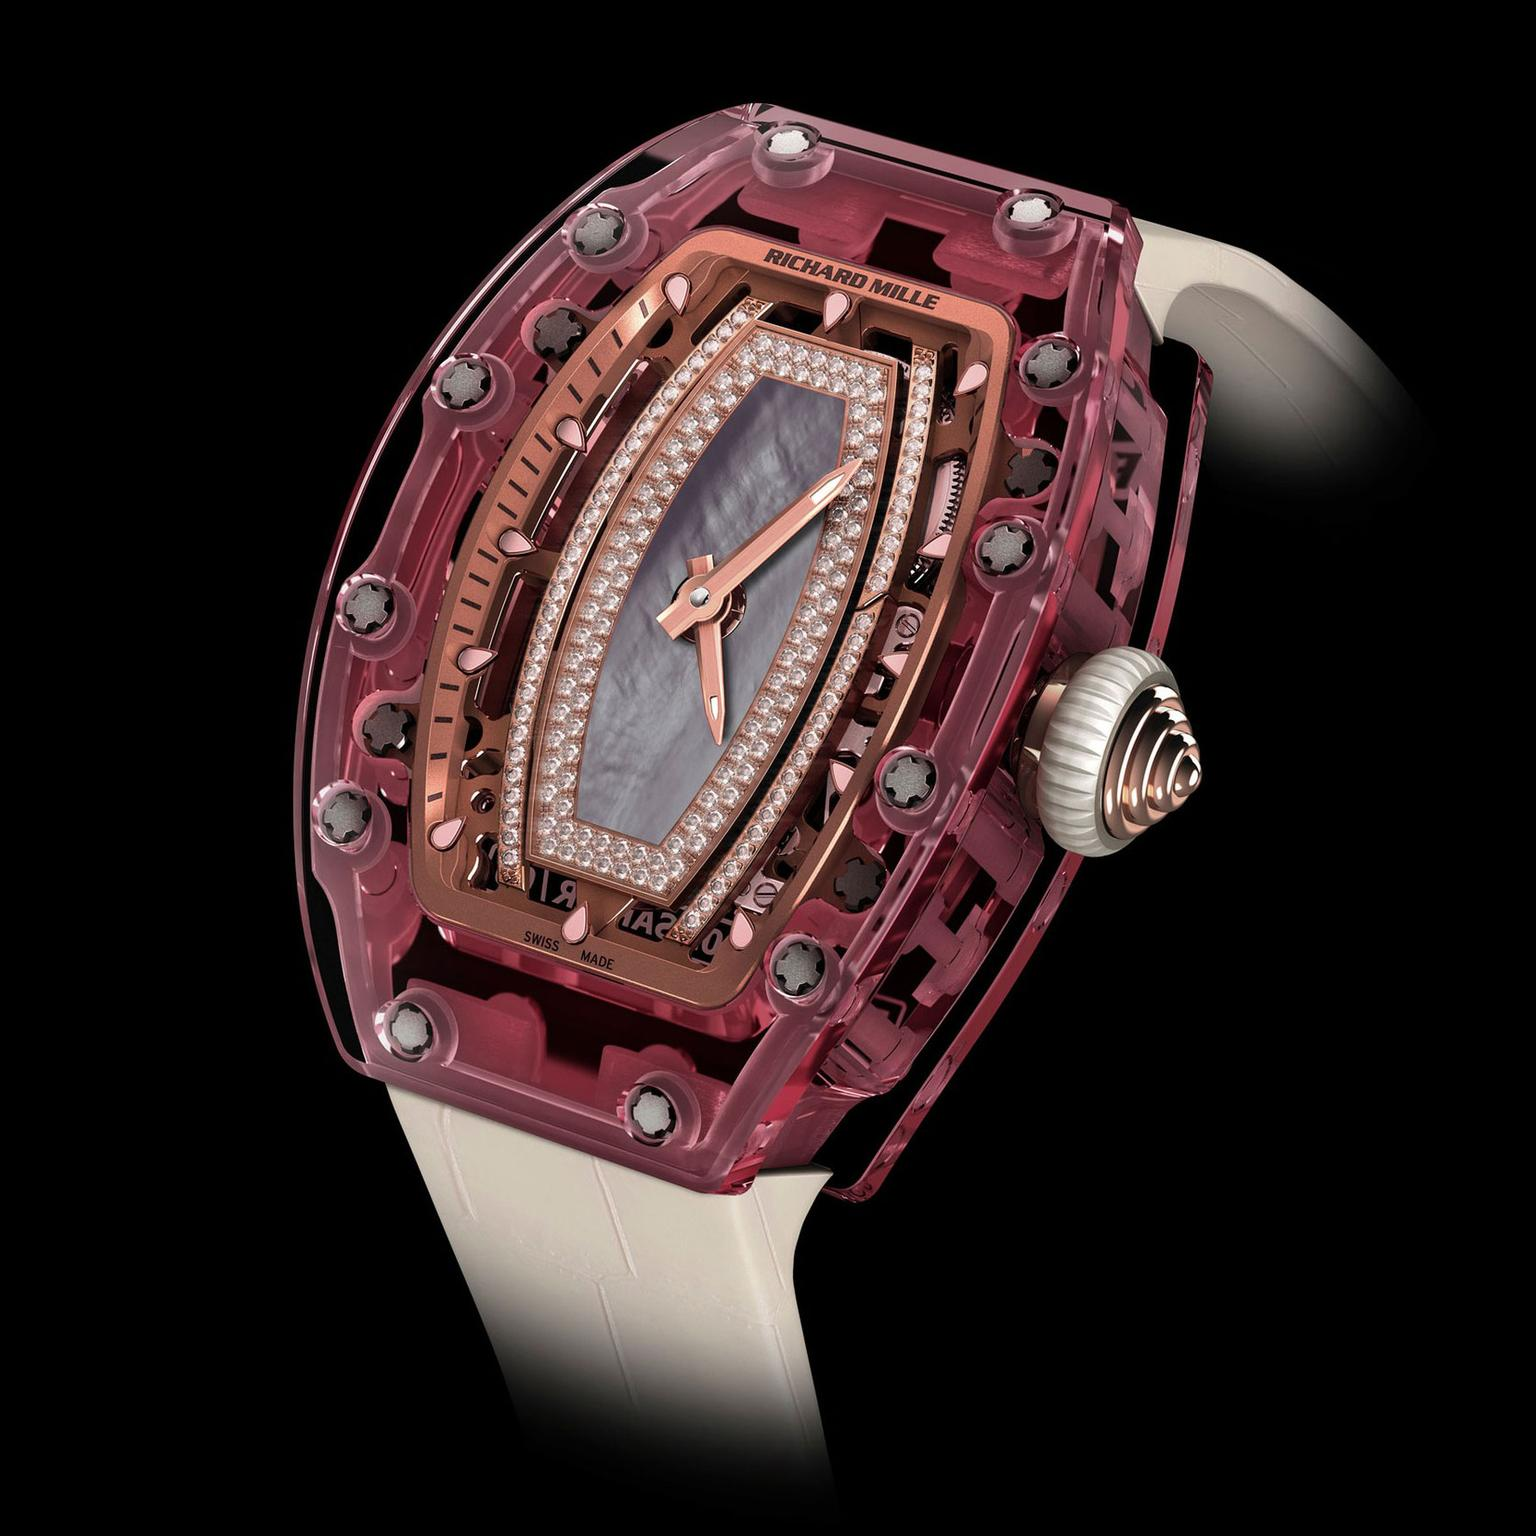 Richard Mille RM 07-02 Pink Lady Sapphire watch